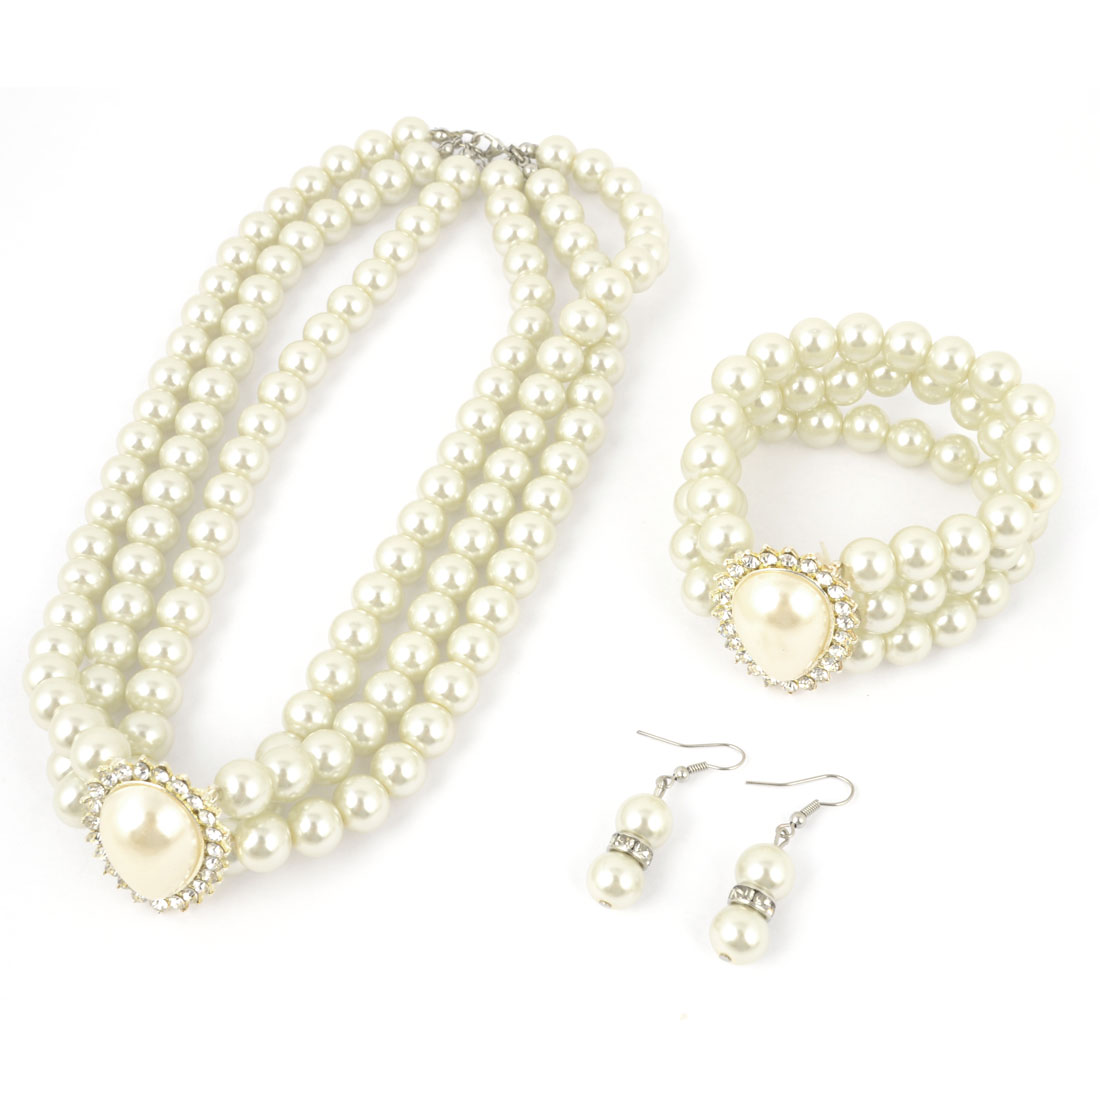 3 in 1 Faux Pearl Three Strand Beaded Pendant Choker Necklace Bracelet Eardrop Set